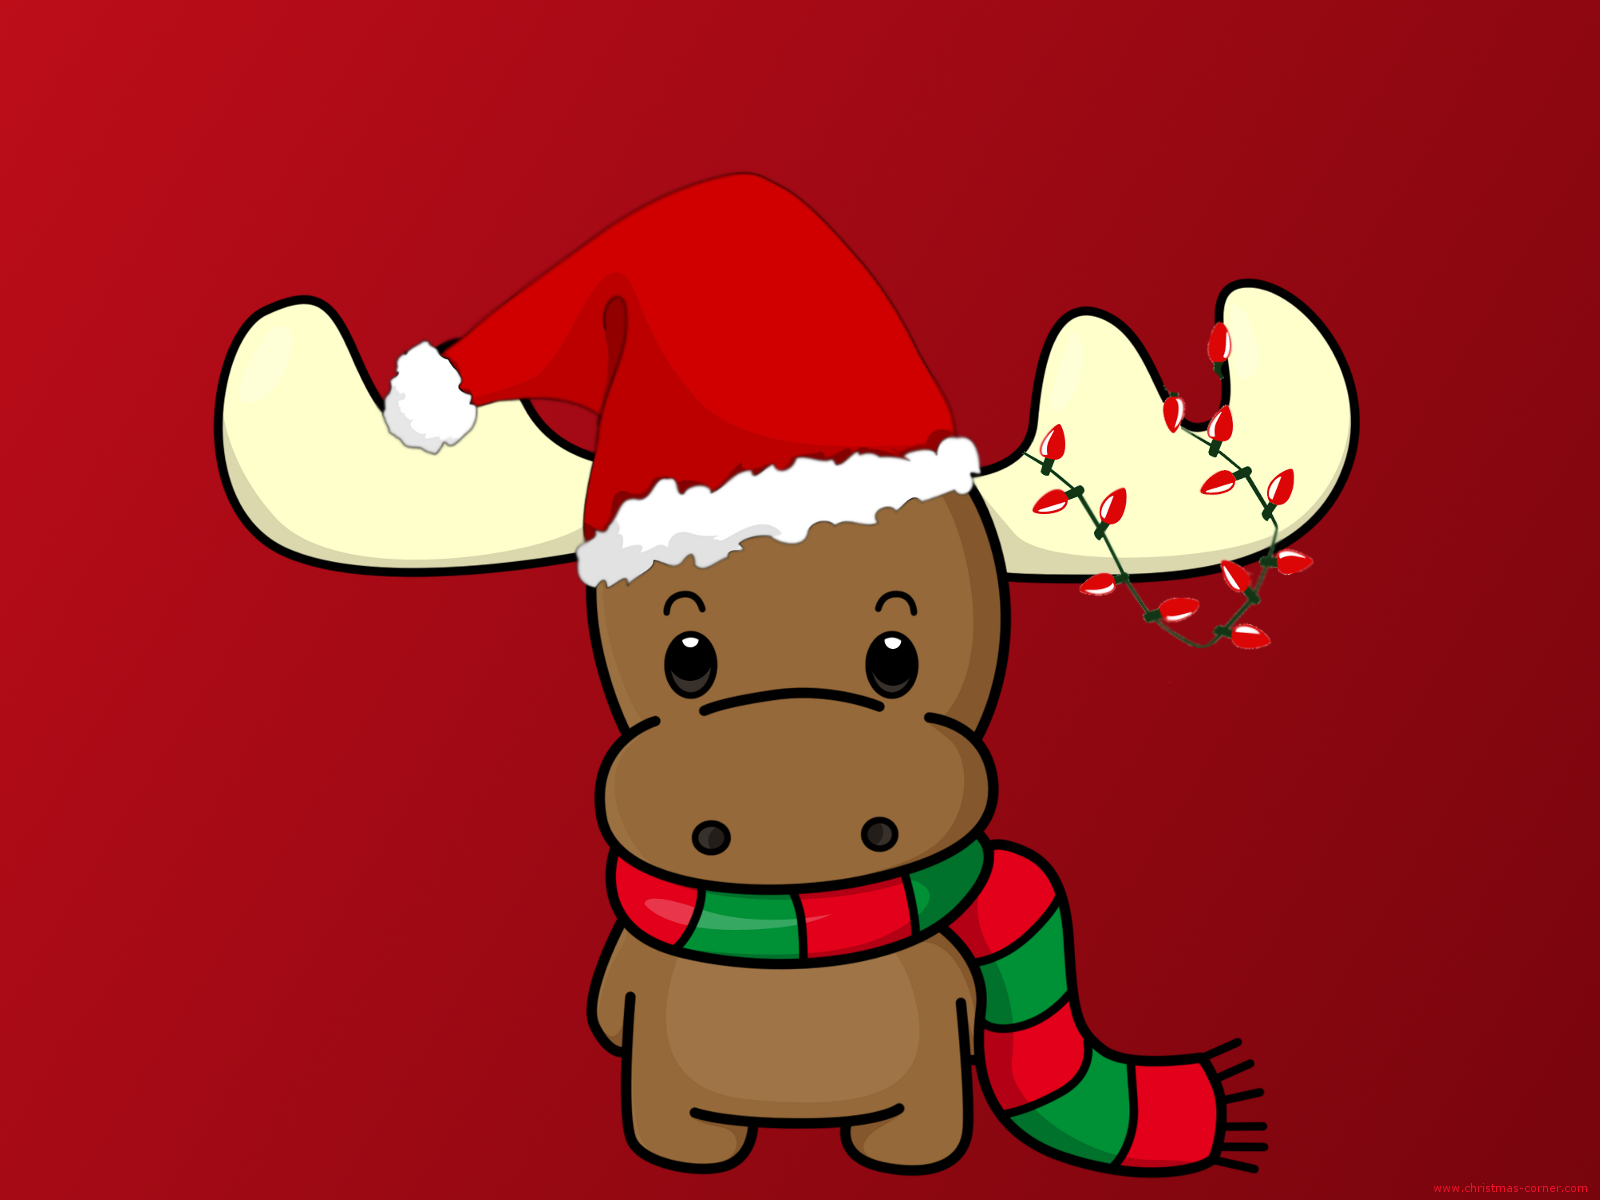 [48+] Cute Christmas Wallpapers And Screensavers On